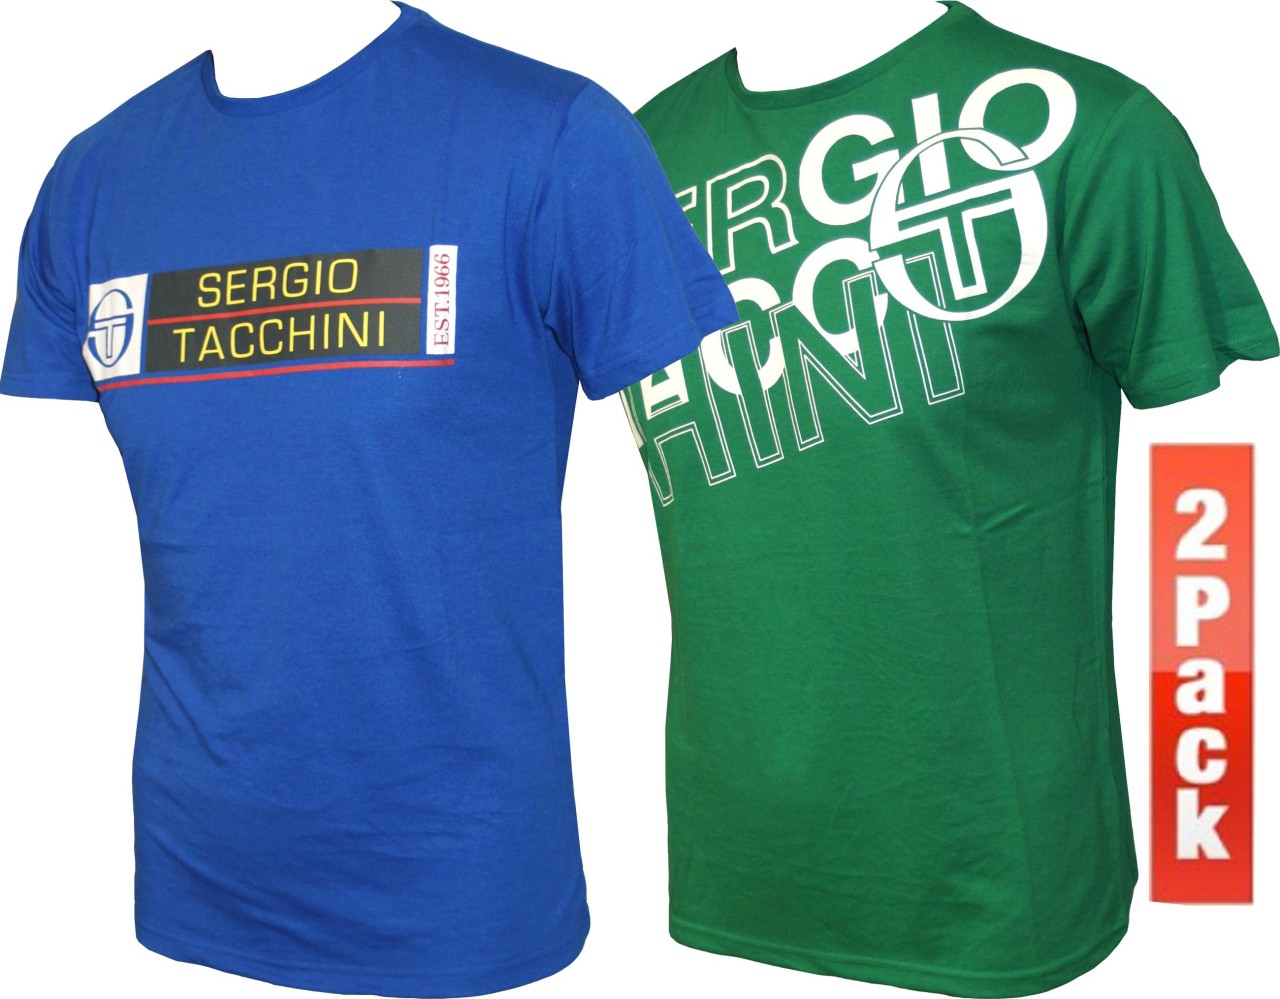 NEW-MENS-Sergio-Tacchini-PACK-OF-TWO-Tee-T-Shirt-SIZE